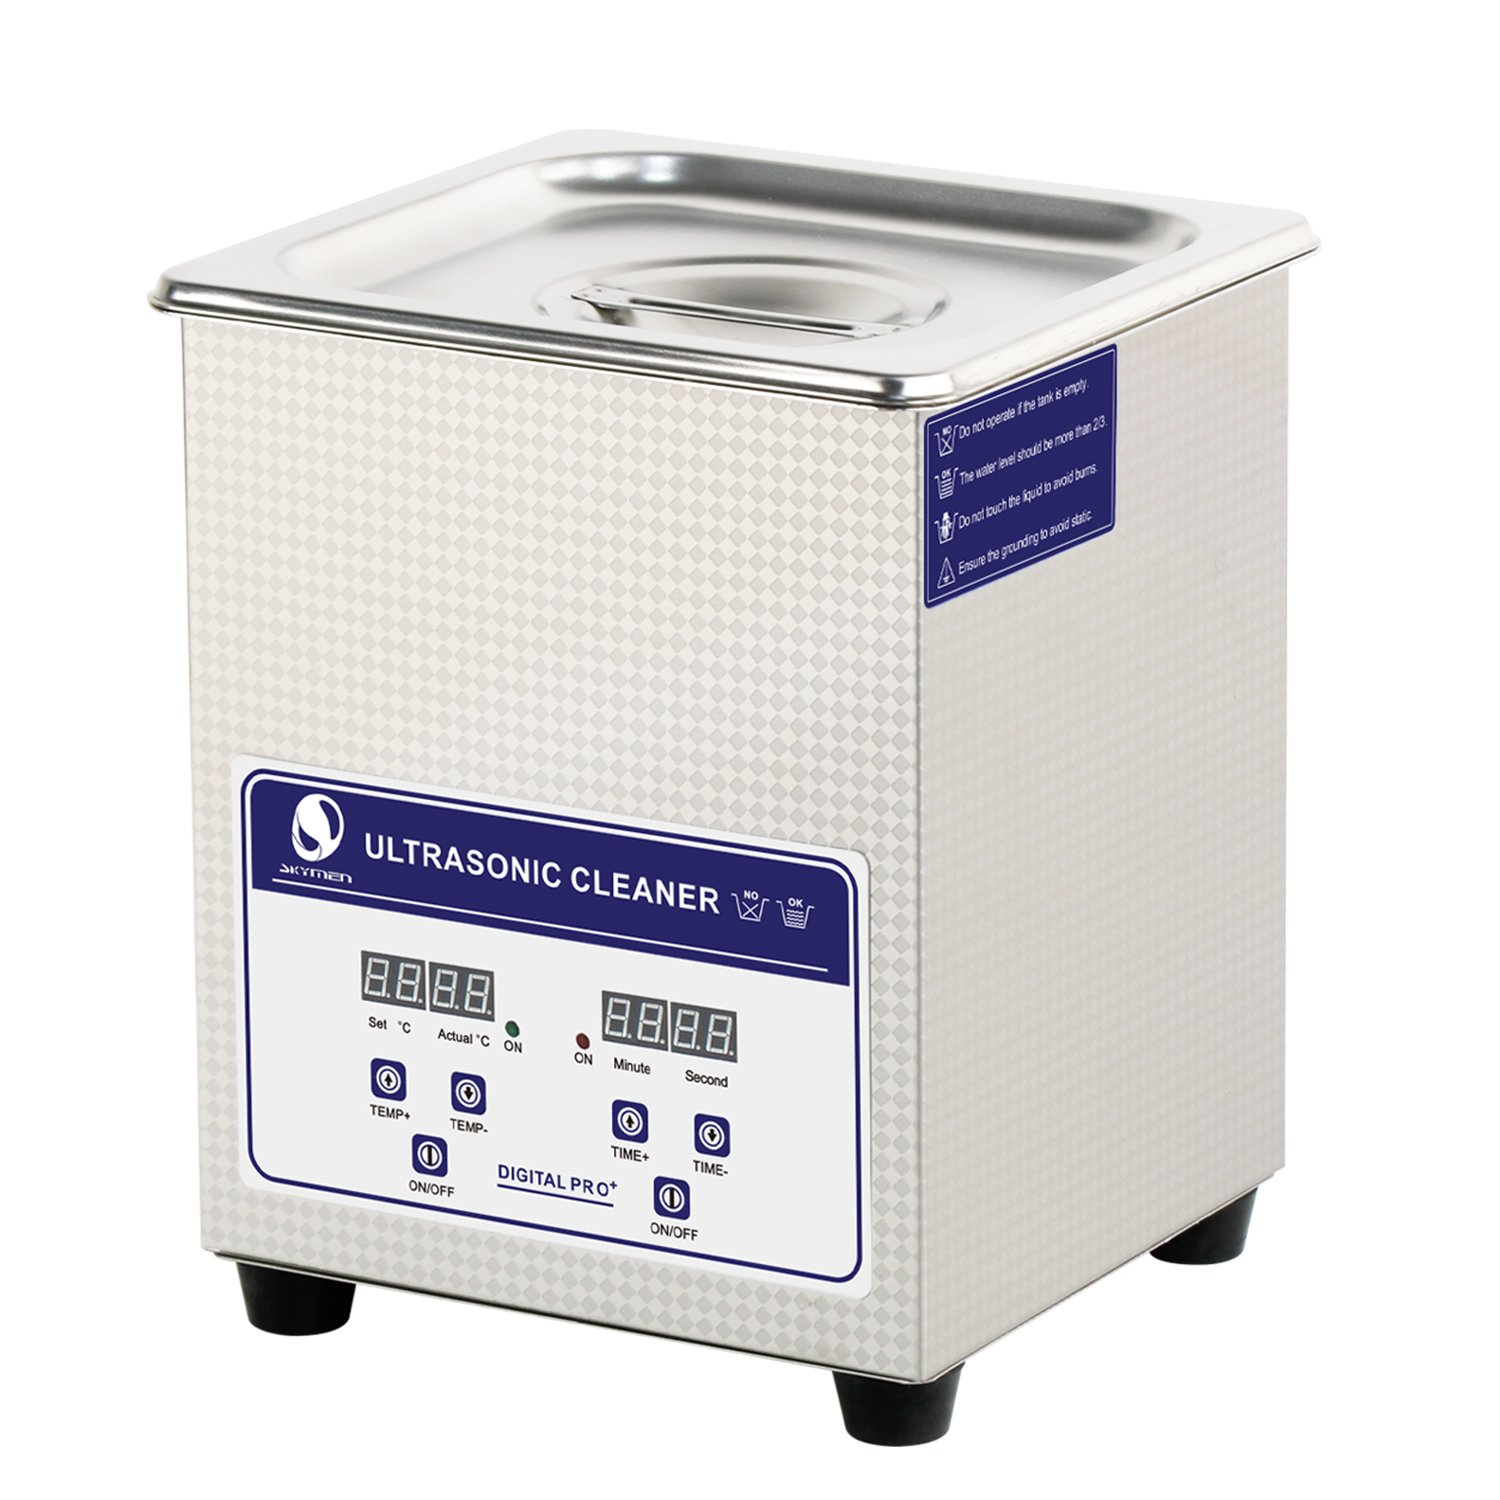 SKYMEN Ultrasonic Cleaner 2L Ultrasonic Jewelry Cleaner with Timer and Heater Adjustable, Stainless Steel Ultra sonic Cleaner Machine for Cleaning Jewellry Eyeglasses Watchband Denture Metal Parts etc Ltd JP-010S-EU-220V